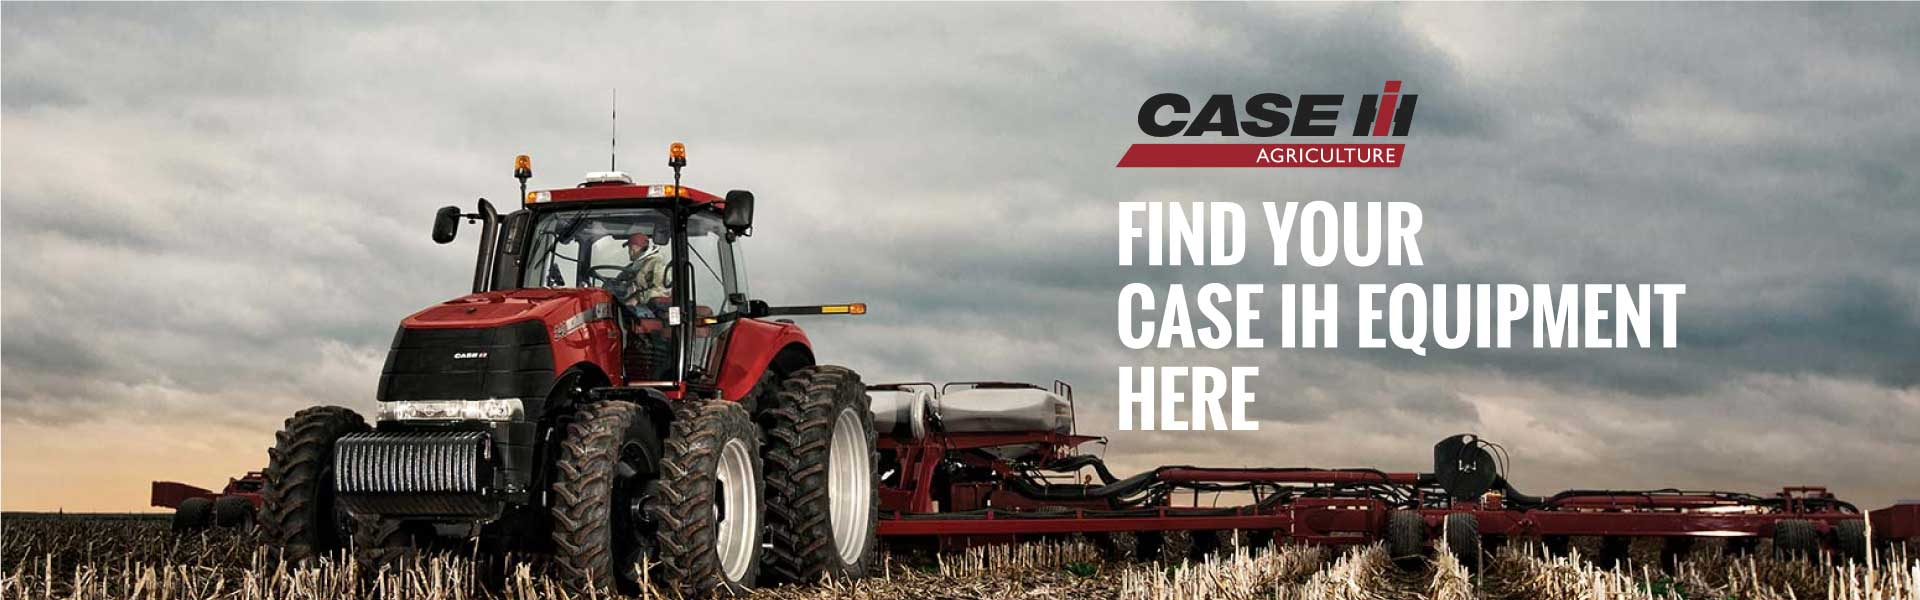 Case IH Equipment available at Wellington Implement, Wellington Ohio